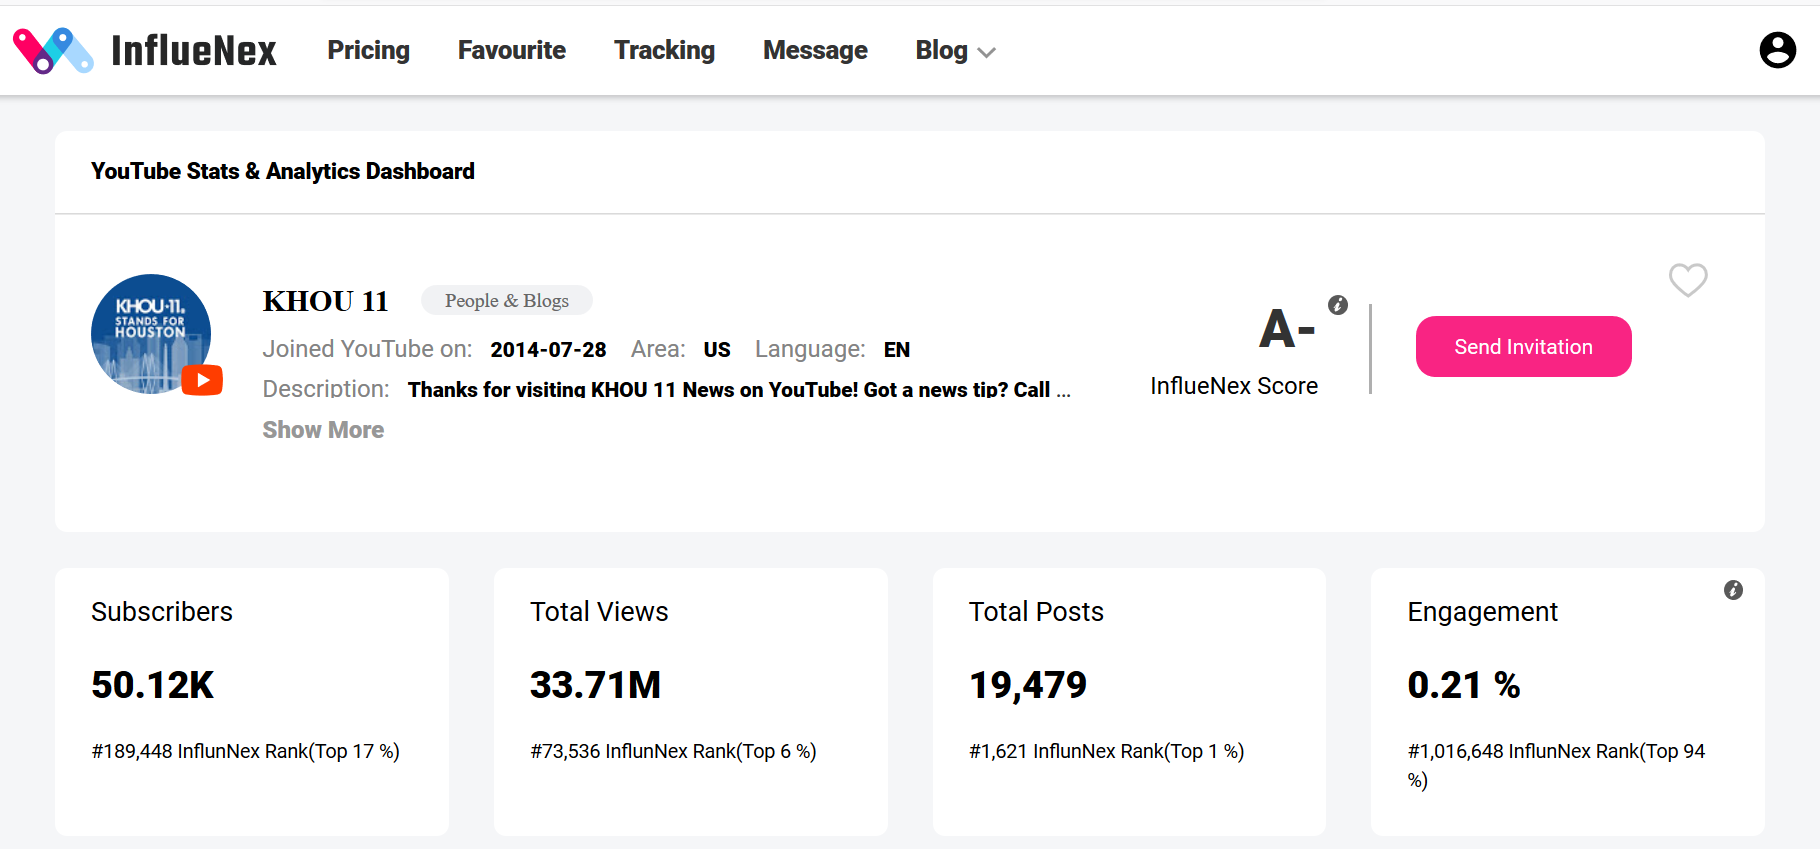 Youtube Marketing Guide: How To Learn Influencer Score With Helpful Tools